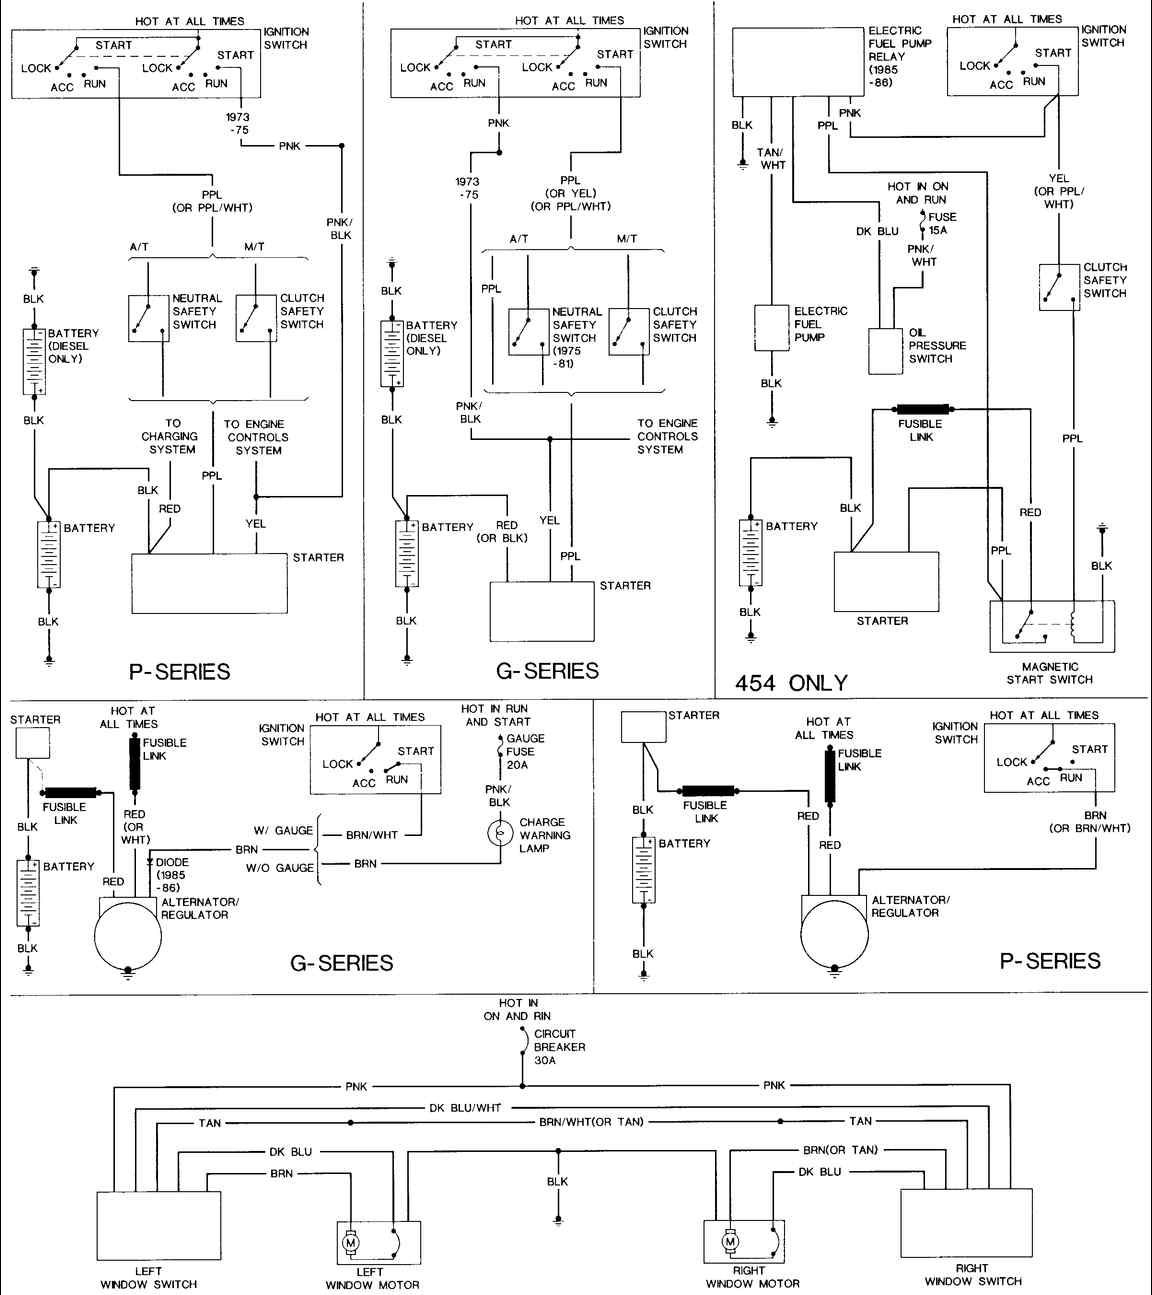 0c73623a181dc376dbb4777e2029d285 85 chevy truck wiring diagram 85 chevy van the steering column 1965 chevy c10 starter wiring diagram at webbmarketing.co